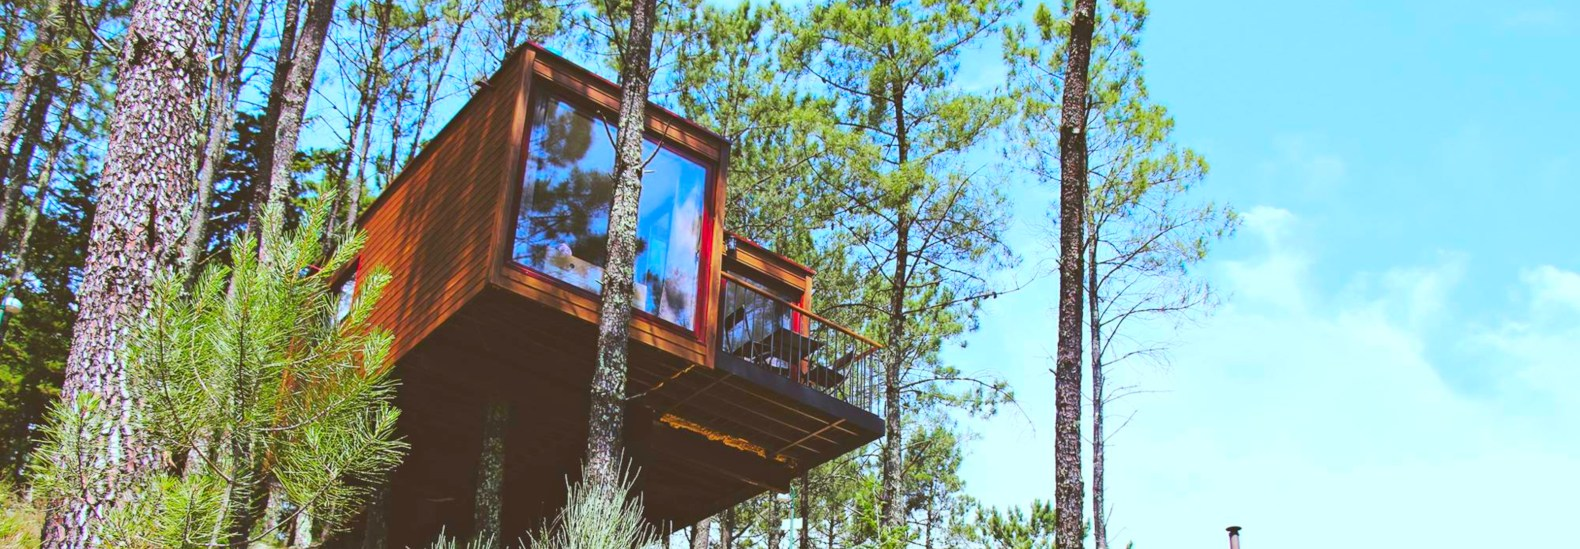 Treehouses made from shipping containers offer the ultimate glamping getaway in Portugal